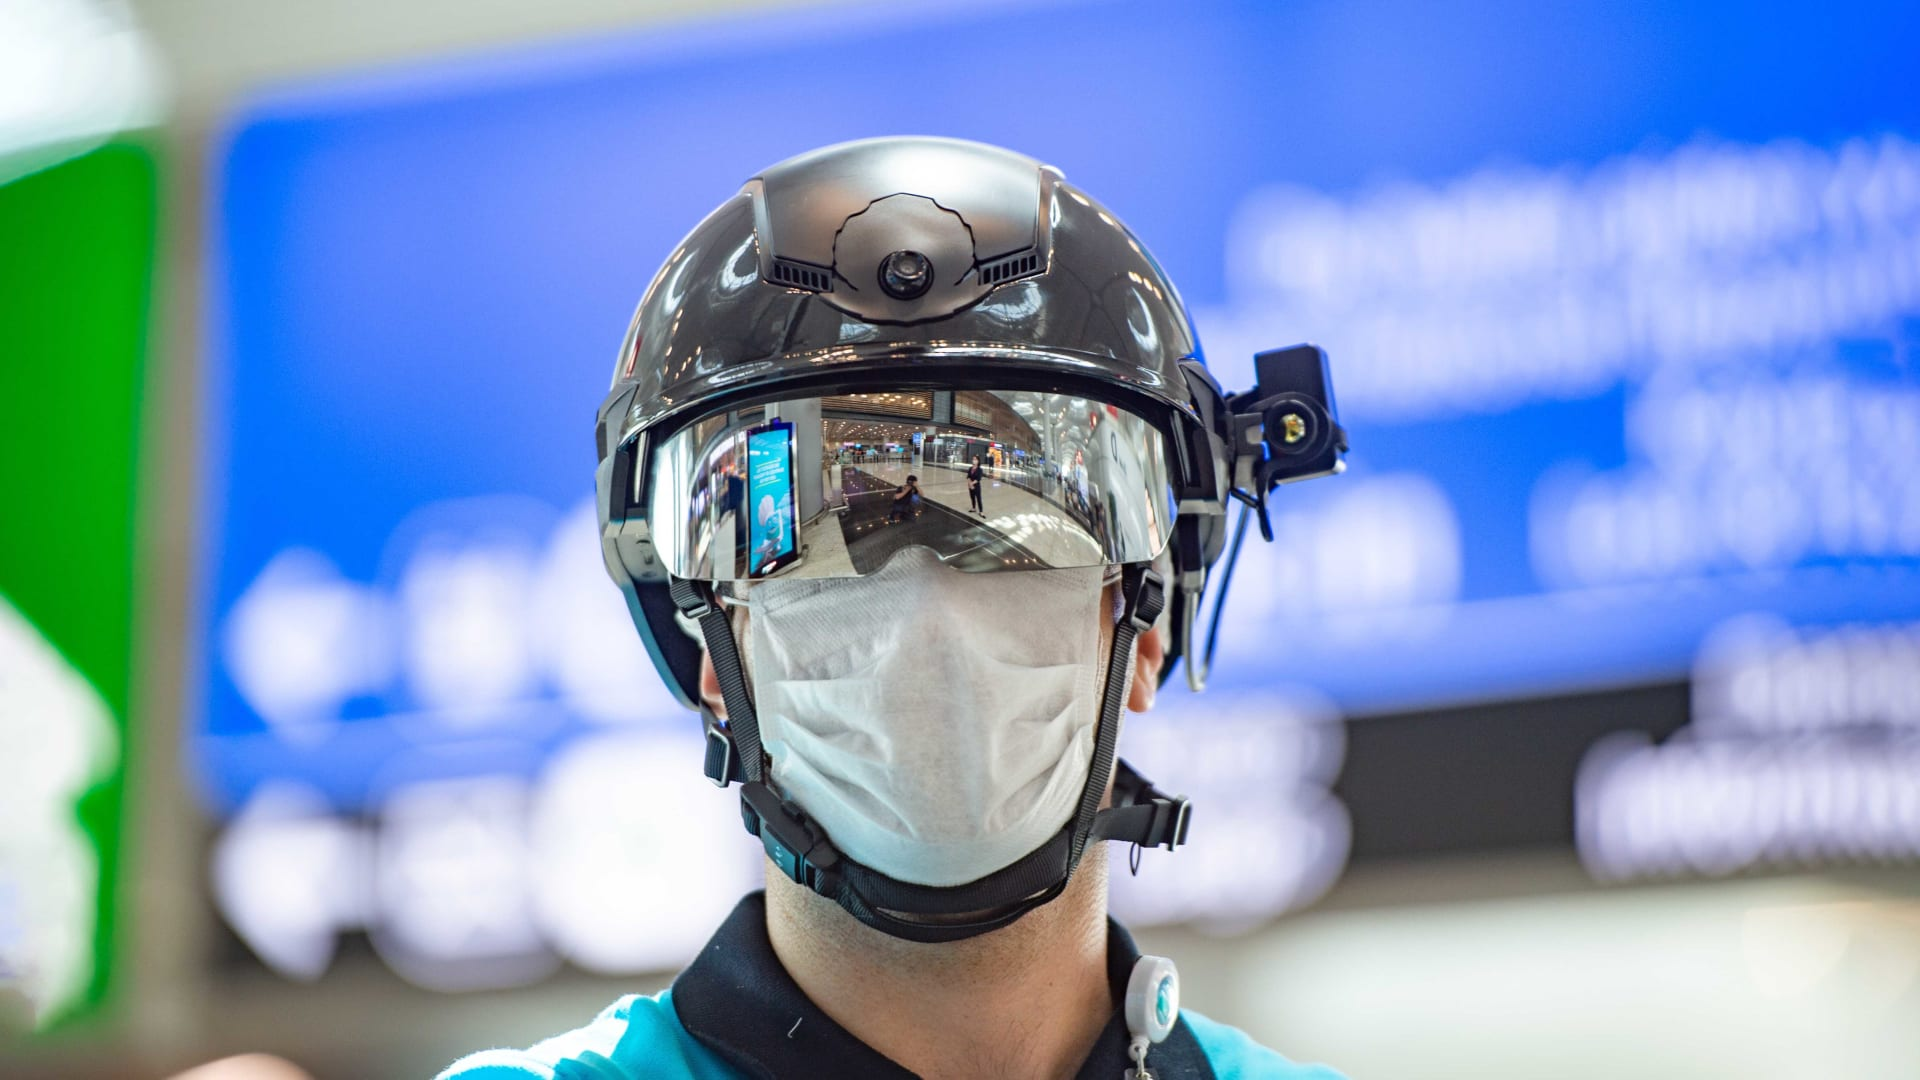 An employee wearing a thermal imaging VF helmet monitors people at Turkey's Istanbul Airport.